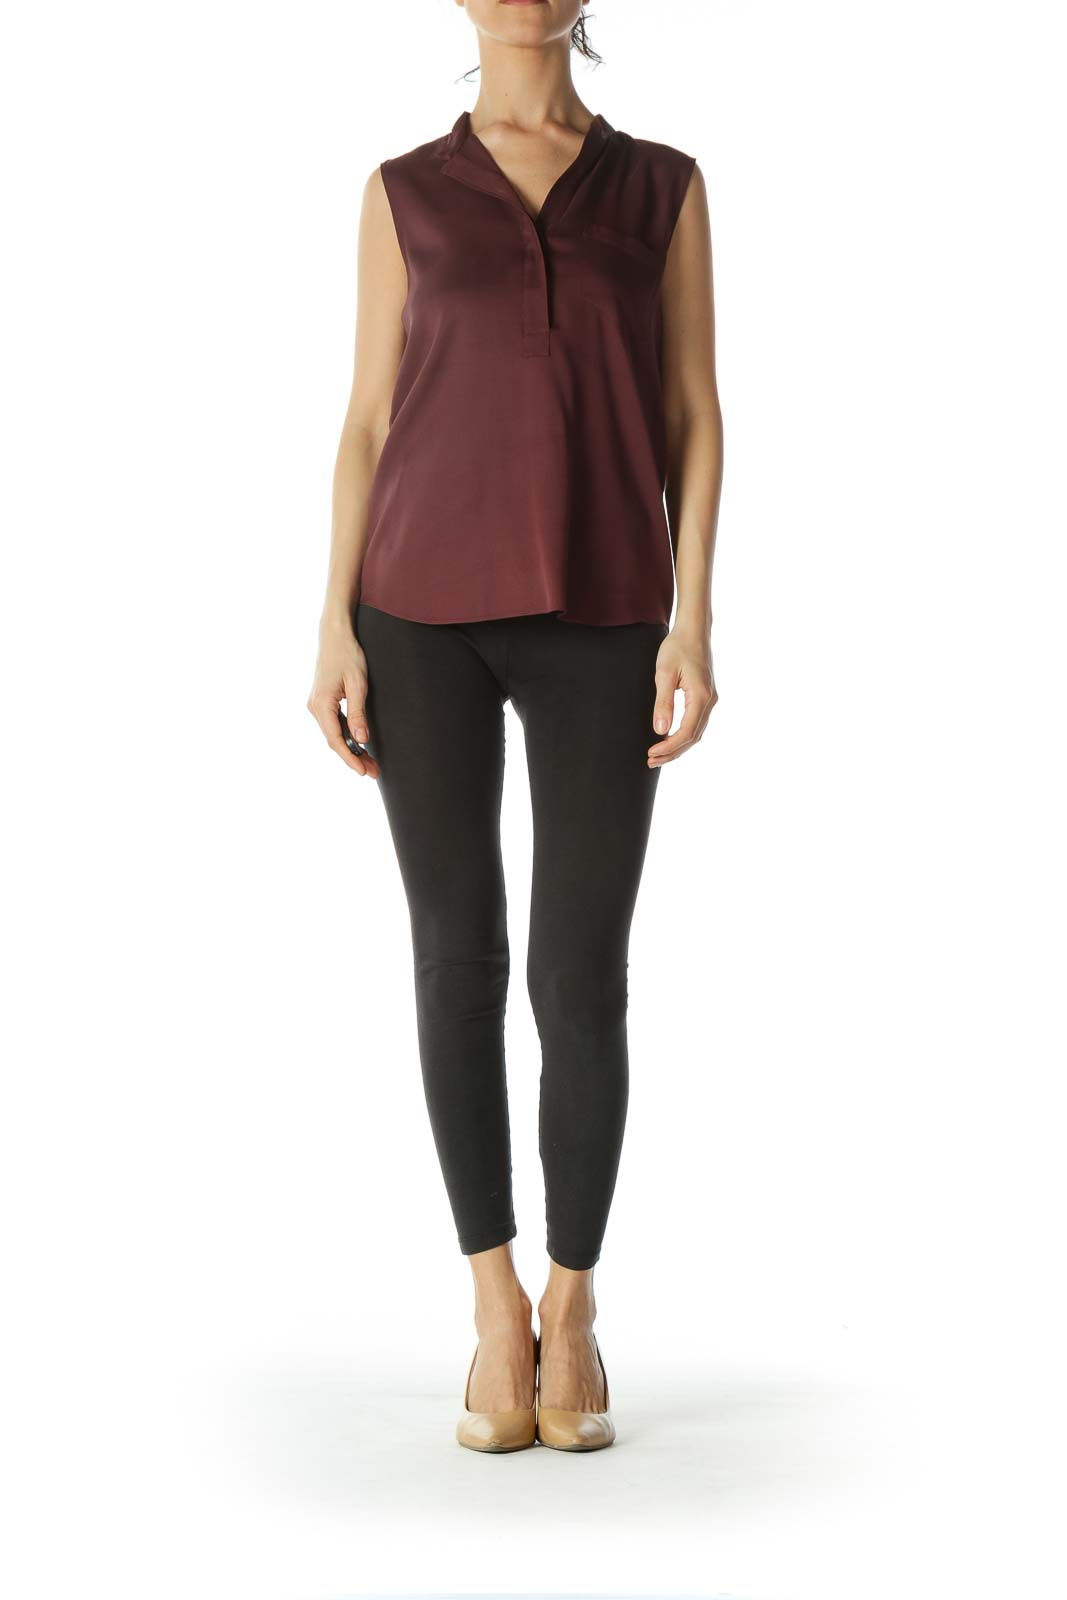 Burgundy V-Neck Pocketed Stretch Tank